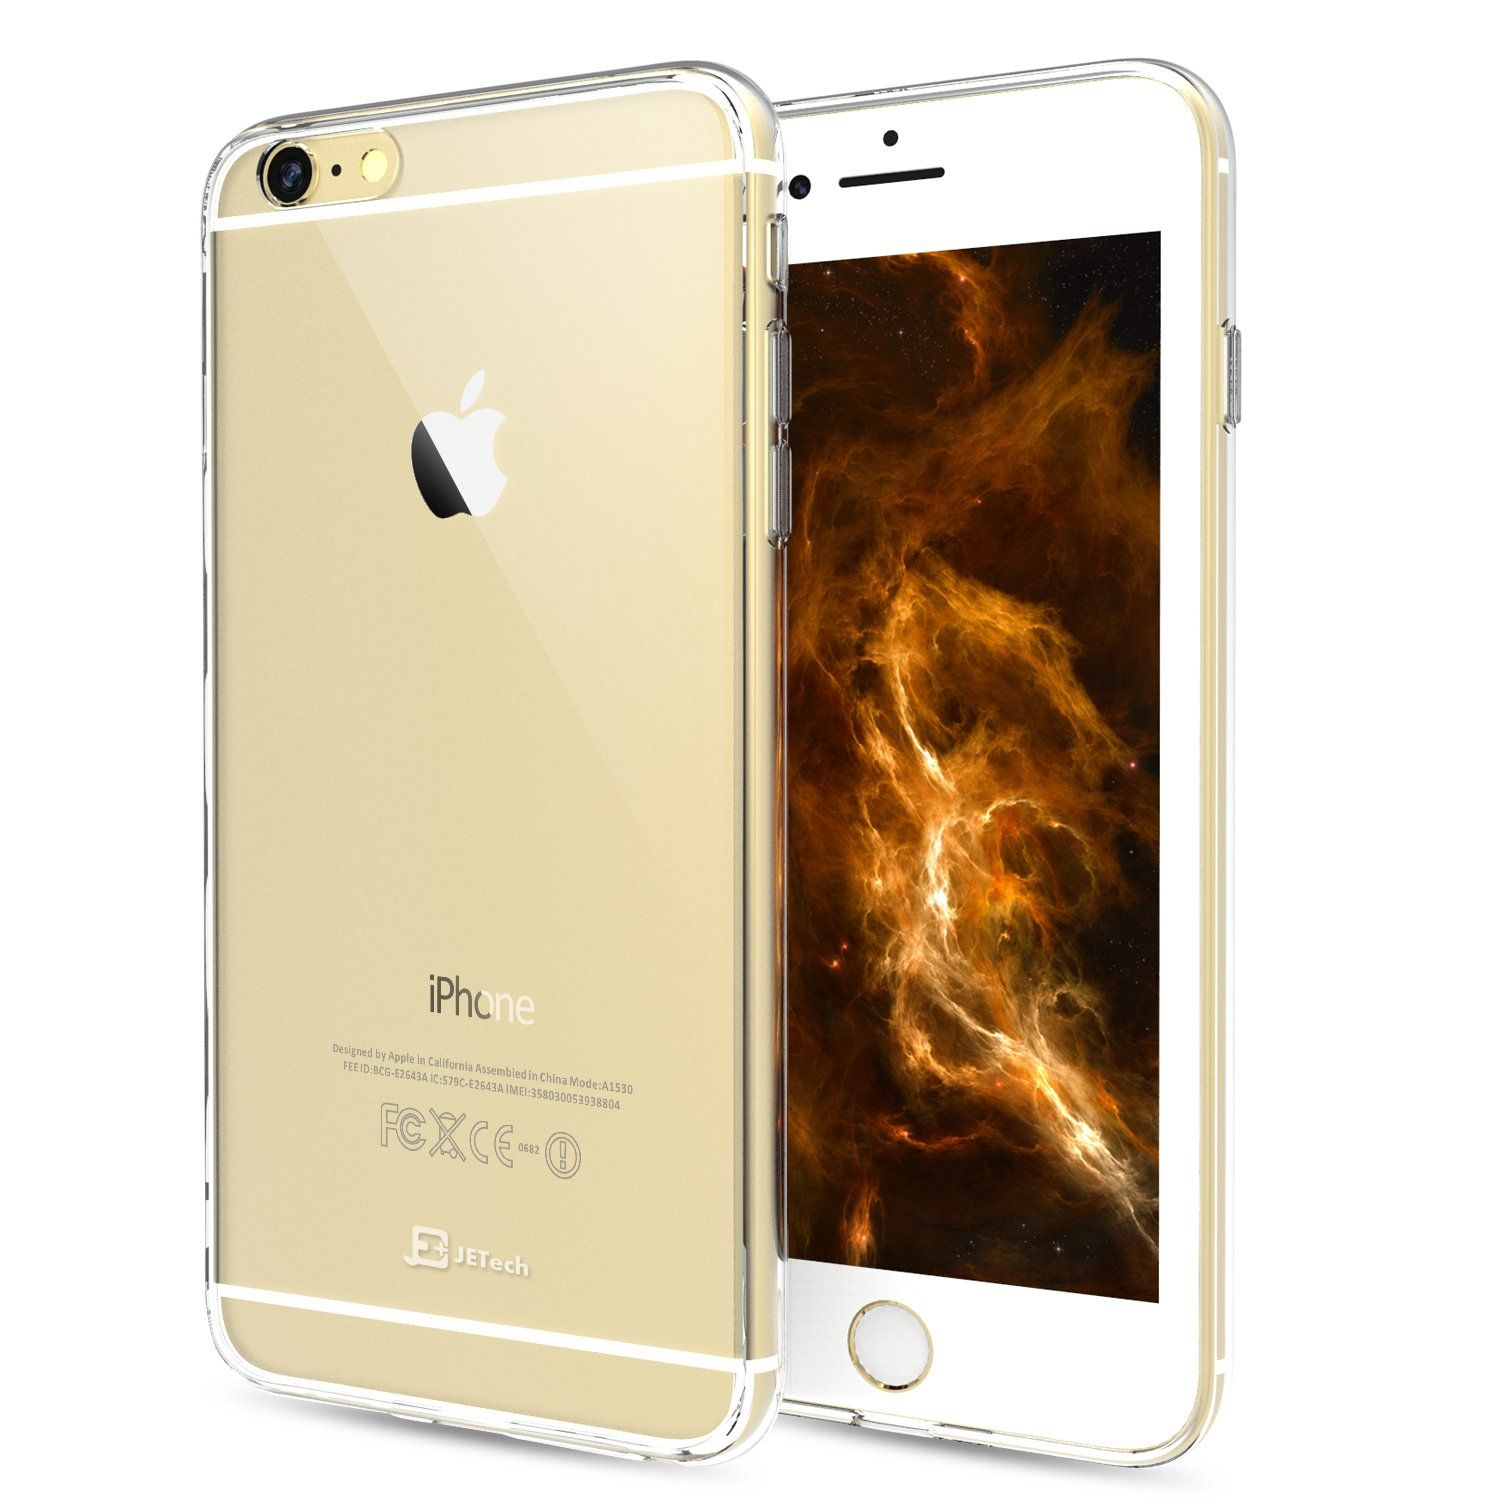 jetech iphone 6 case